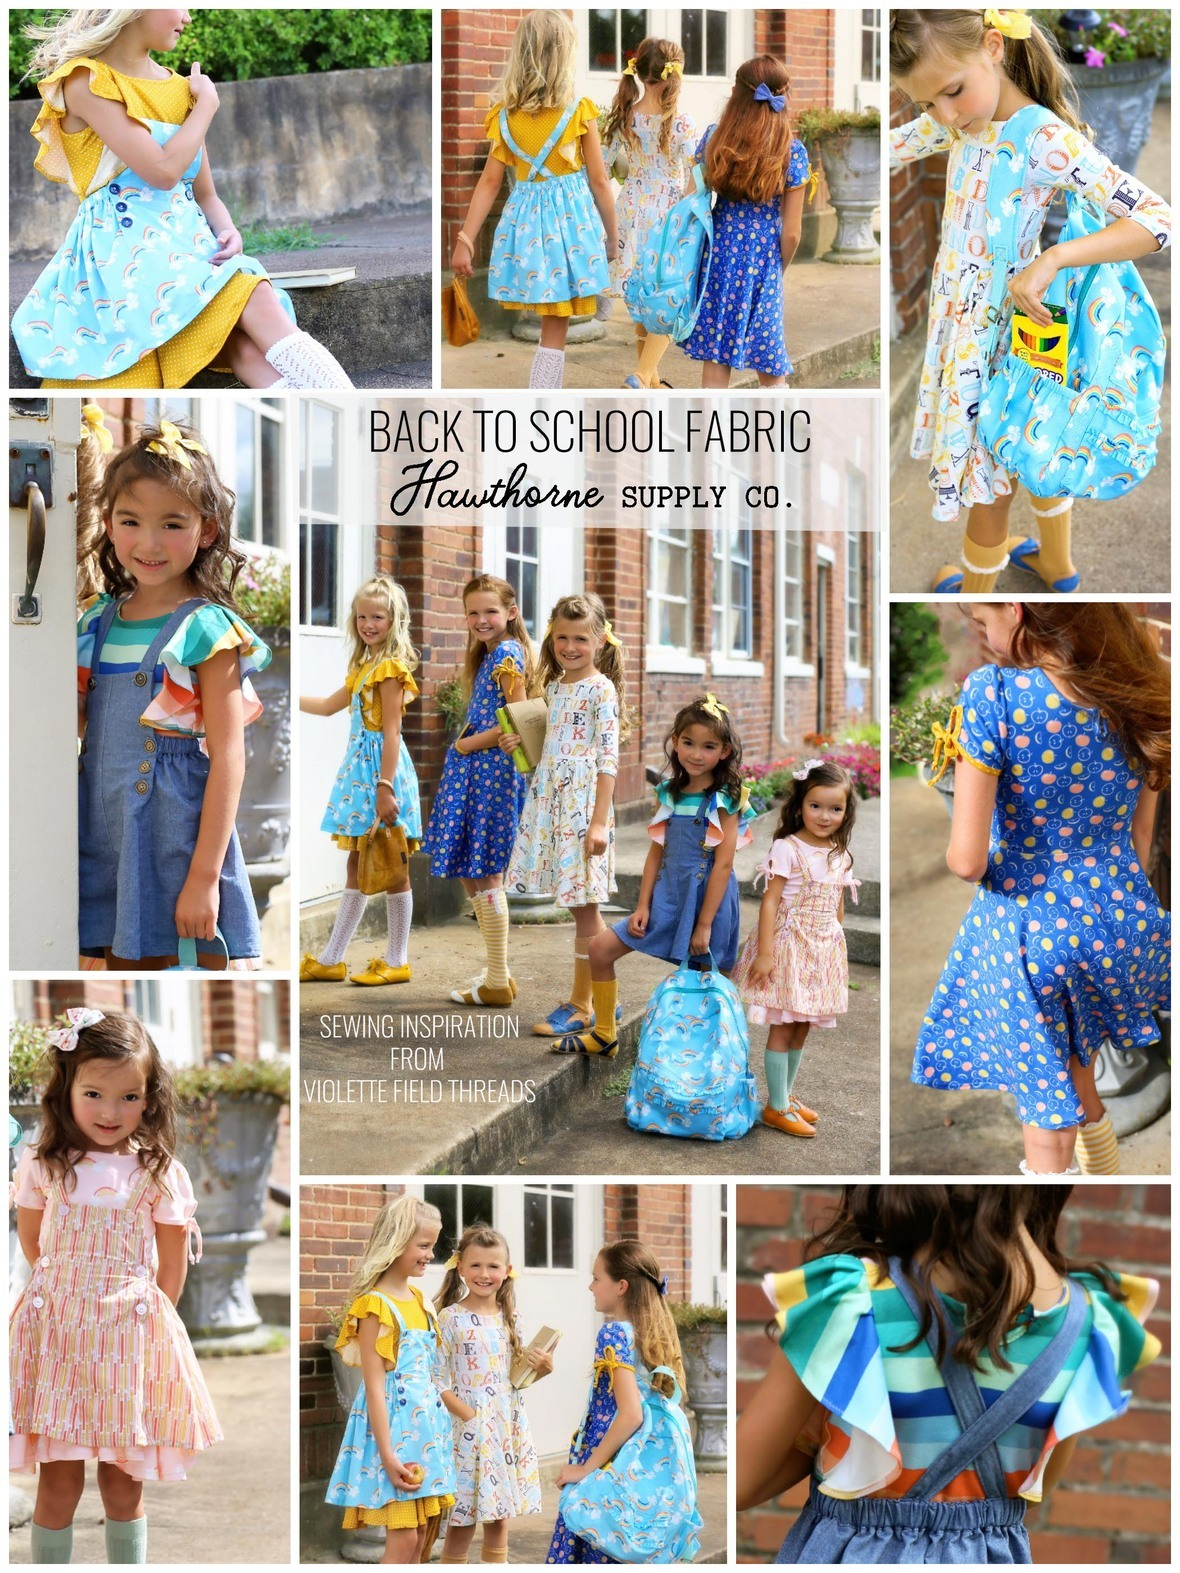 Back to School Sewing Inspiration from Violette Field Threads and Hawthorne Supply Co Fabric